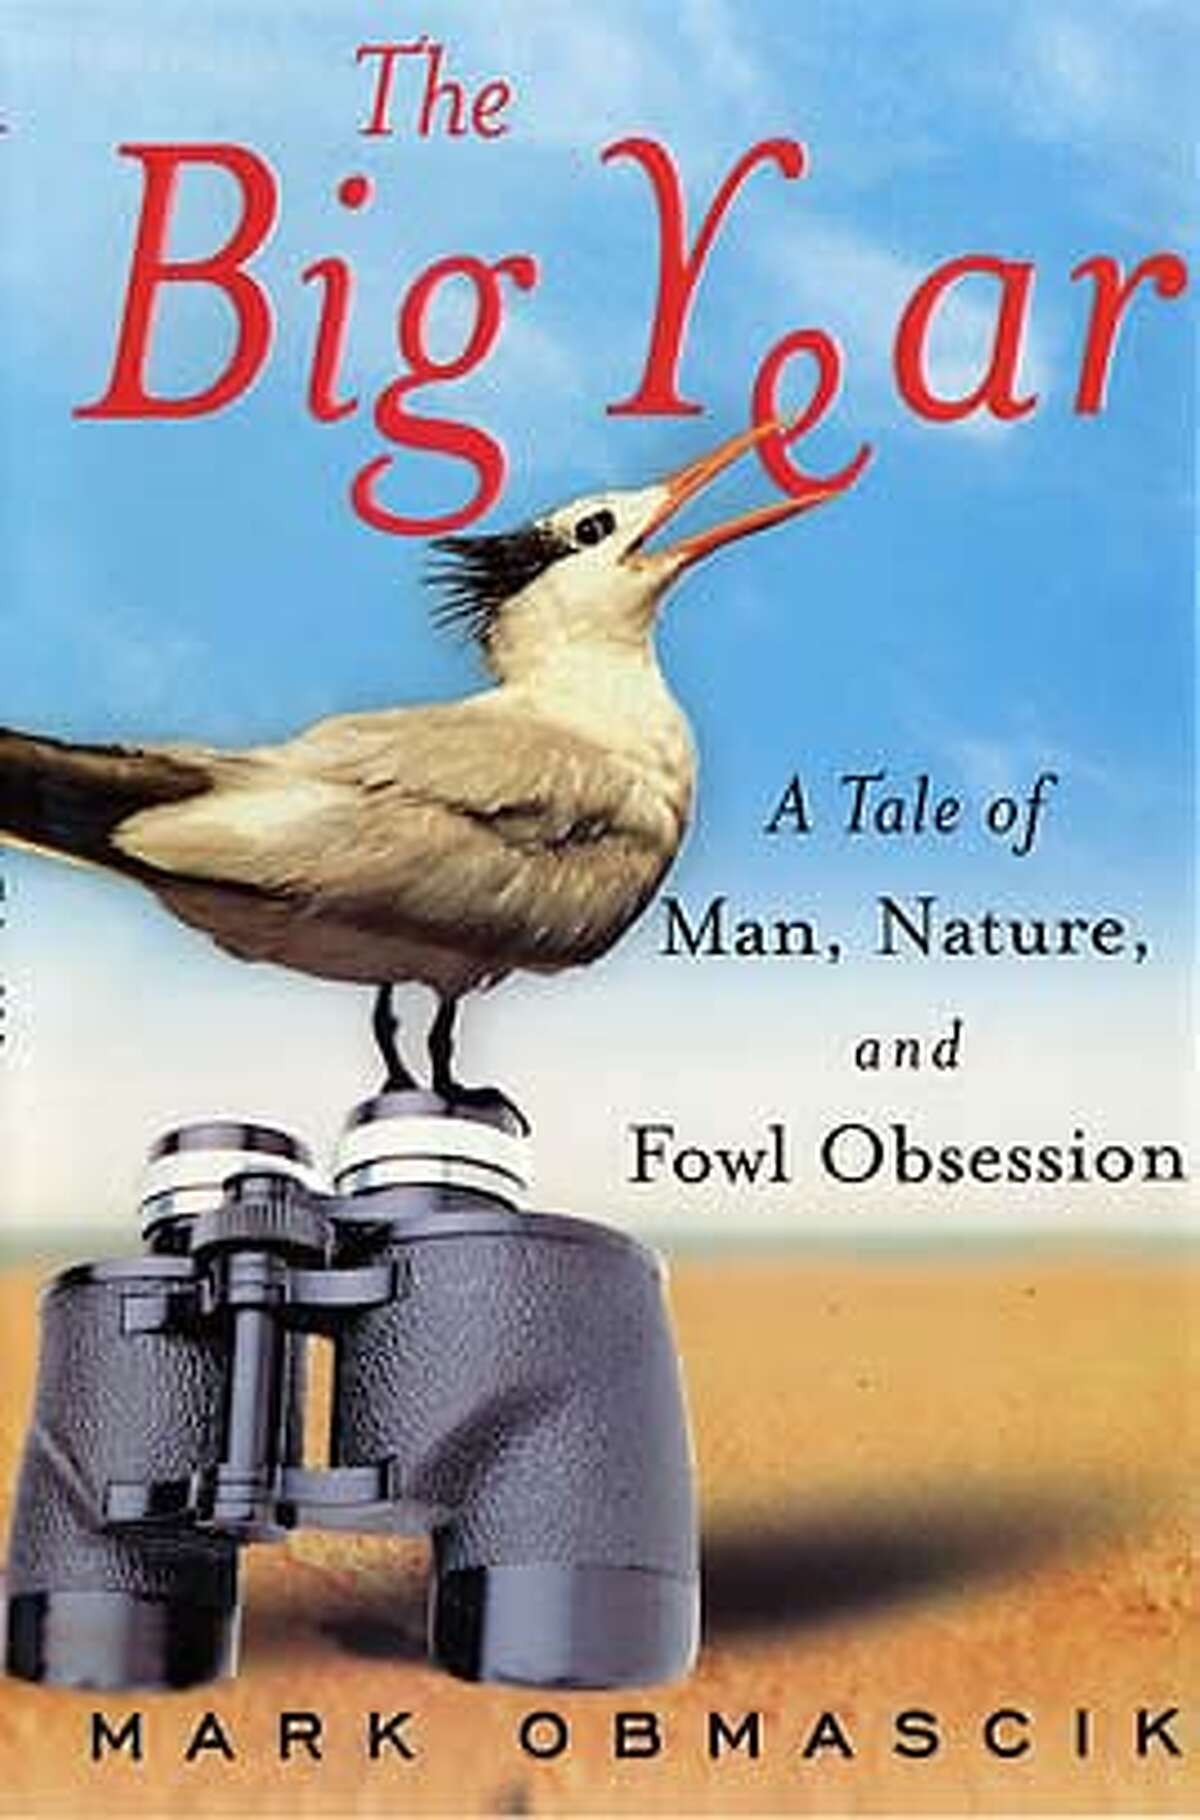 """Book Jacket from """"The Big Year"""" by Mark Obmascik (Free Press) to be used with book review only."""